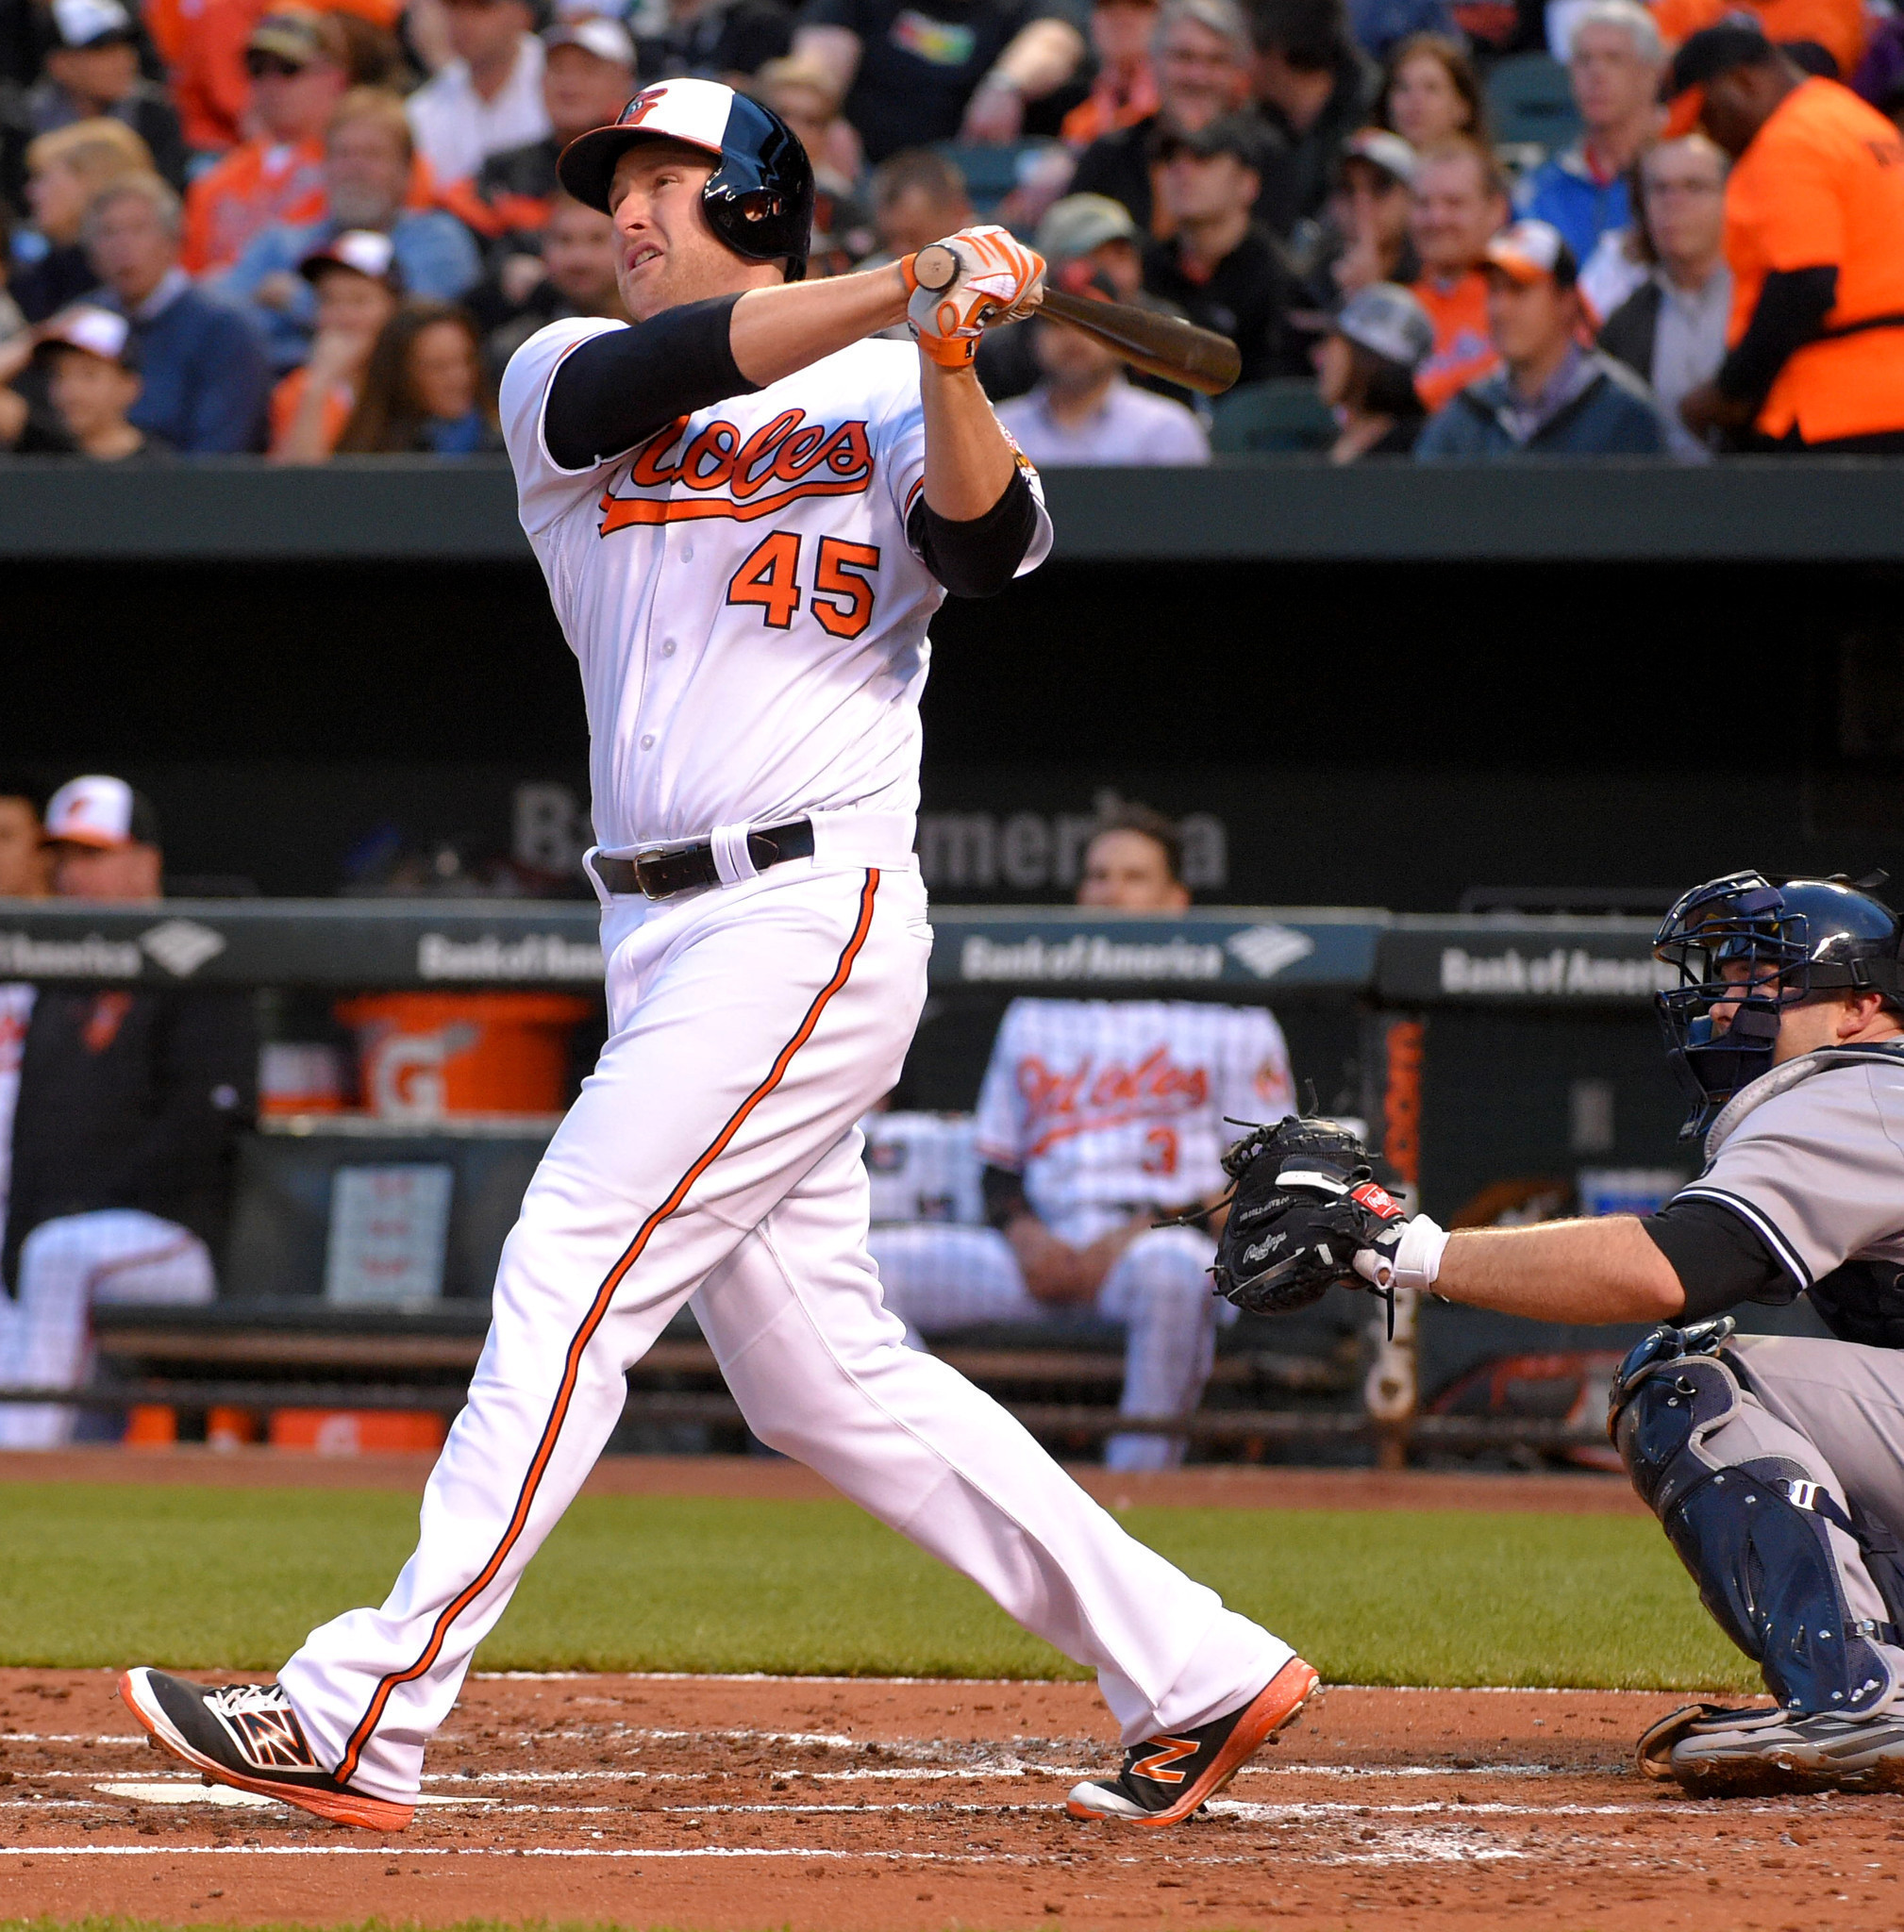 Bal-two-mark-trumbo-homers-lift-orioles-over-slumping-yankees-20160503